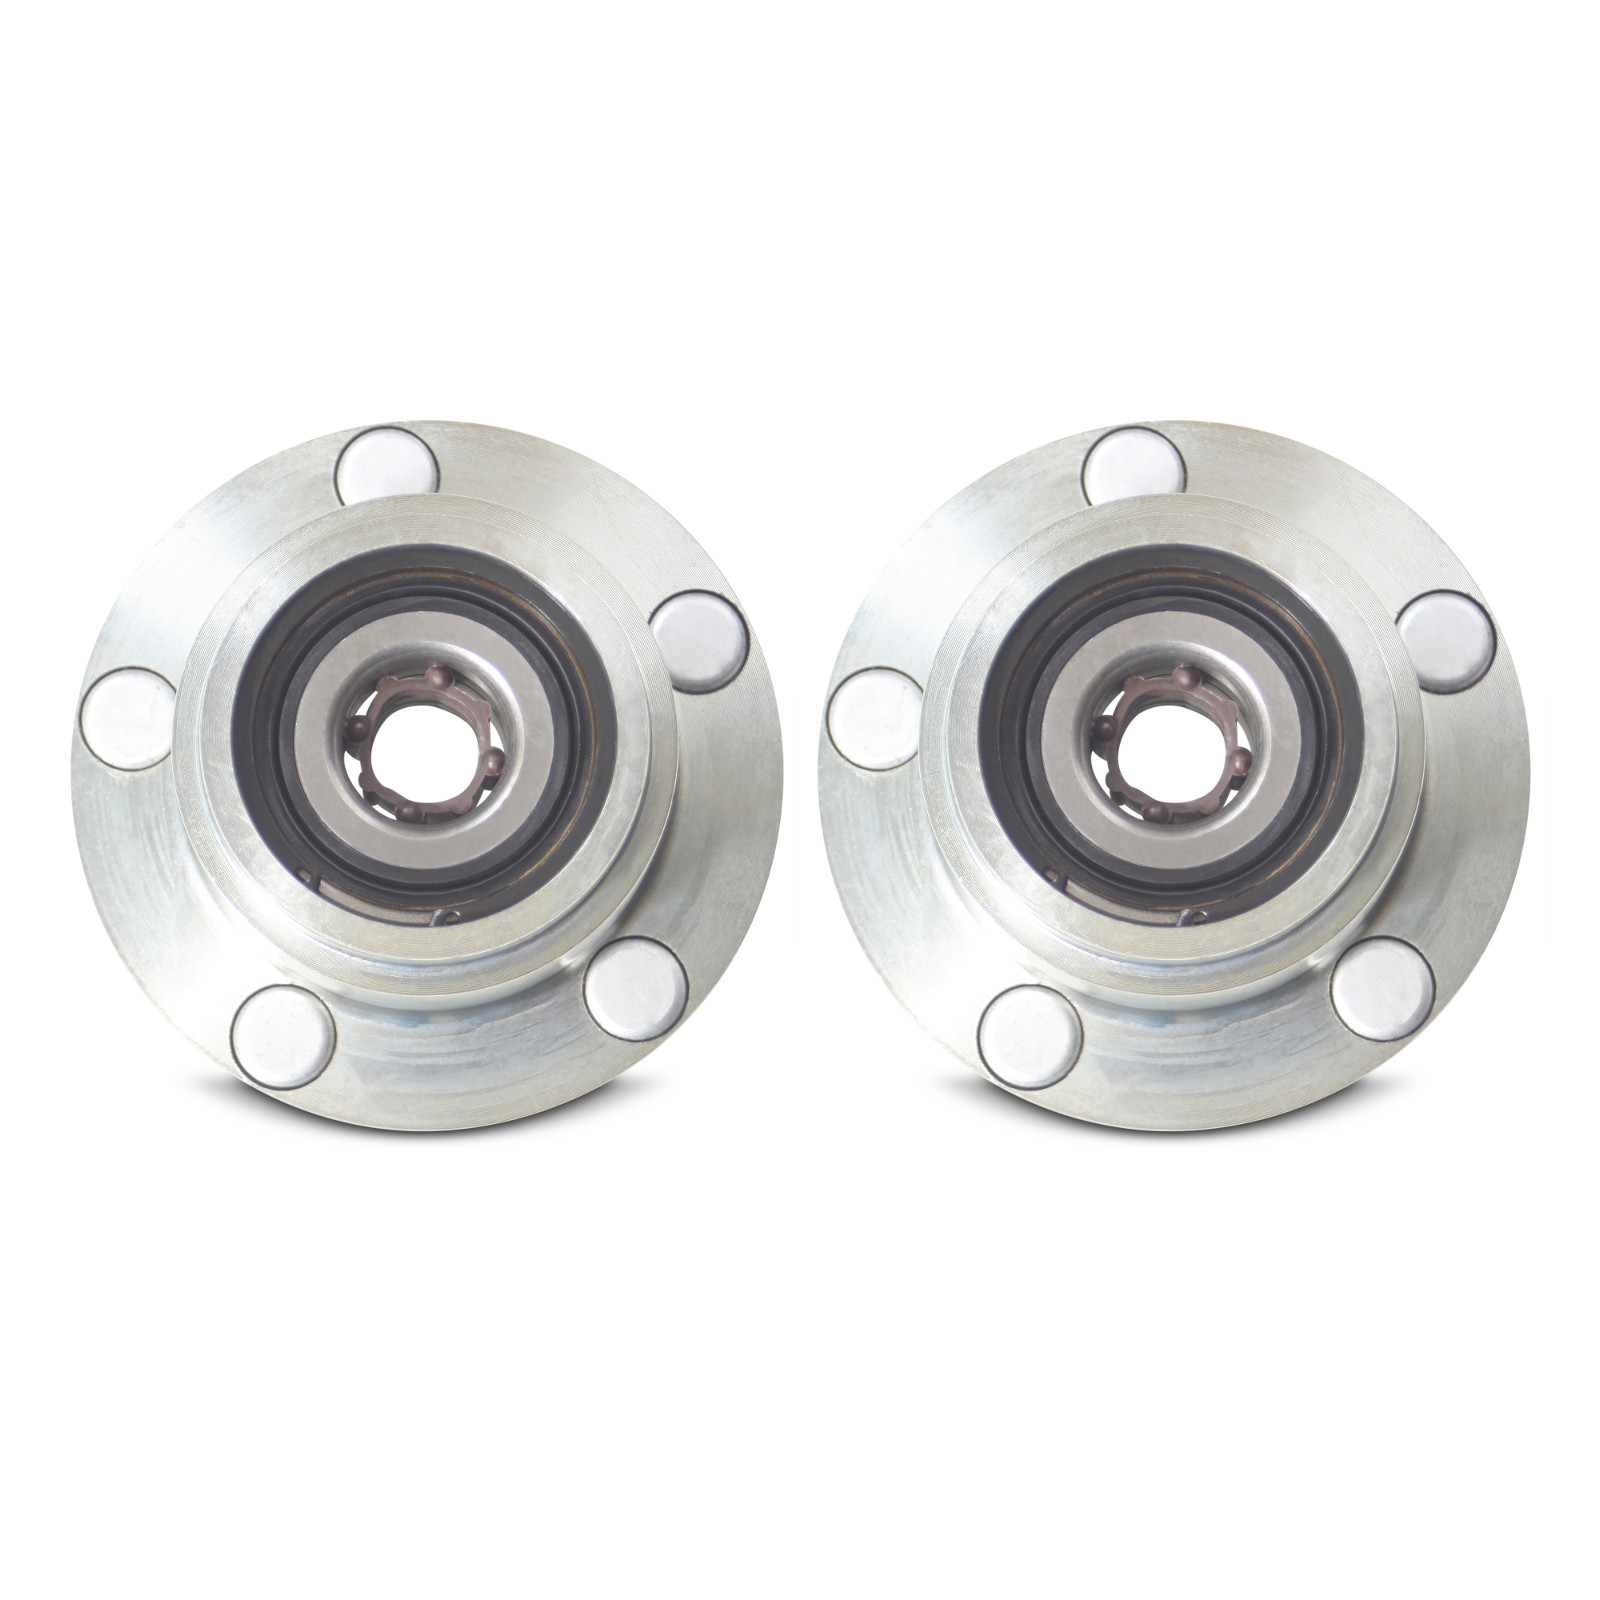 Front Pair of 4 to 5 Lug Wheel Conversion Hubs for 1989-1994 Nissan 240SX S13